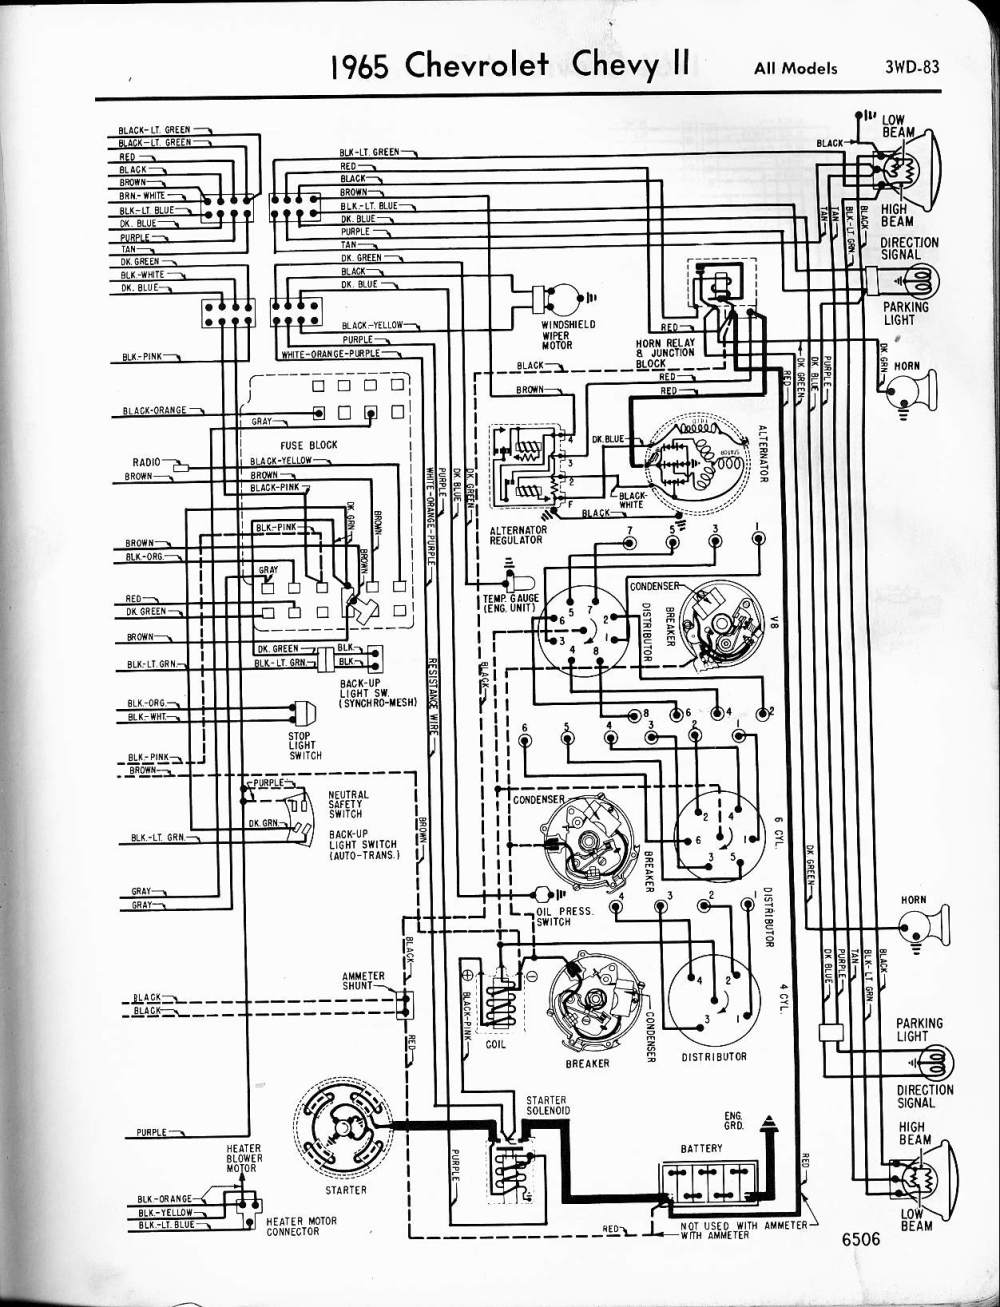 medium resolution of 1968 nova headlight wiring diagram free picture wiring diagram 1977 camaro wiring diagram 1968 nova headlight wiring diagram free picture